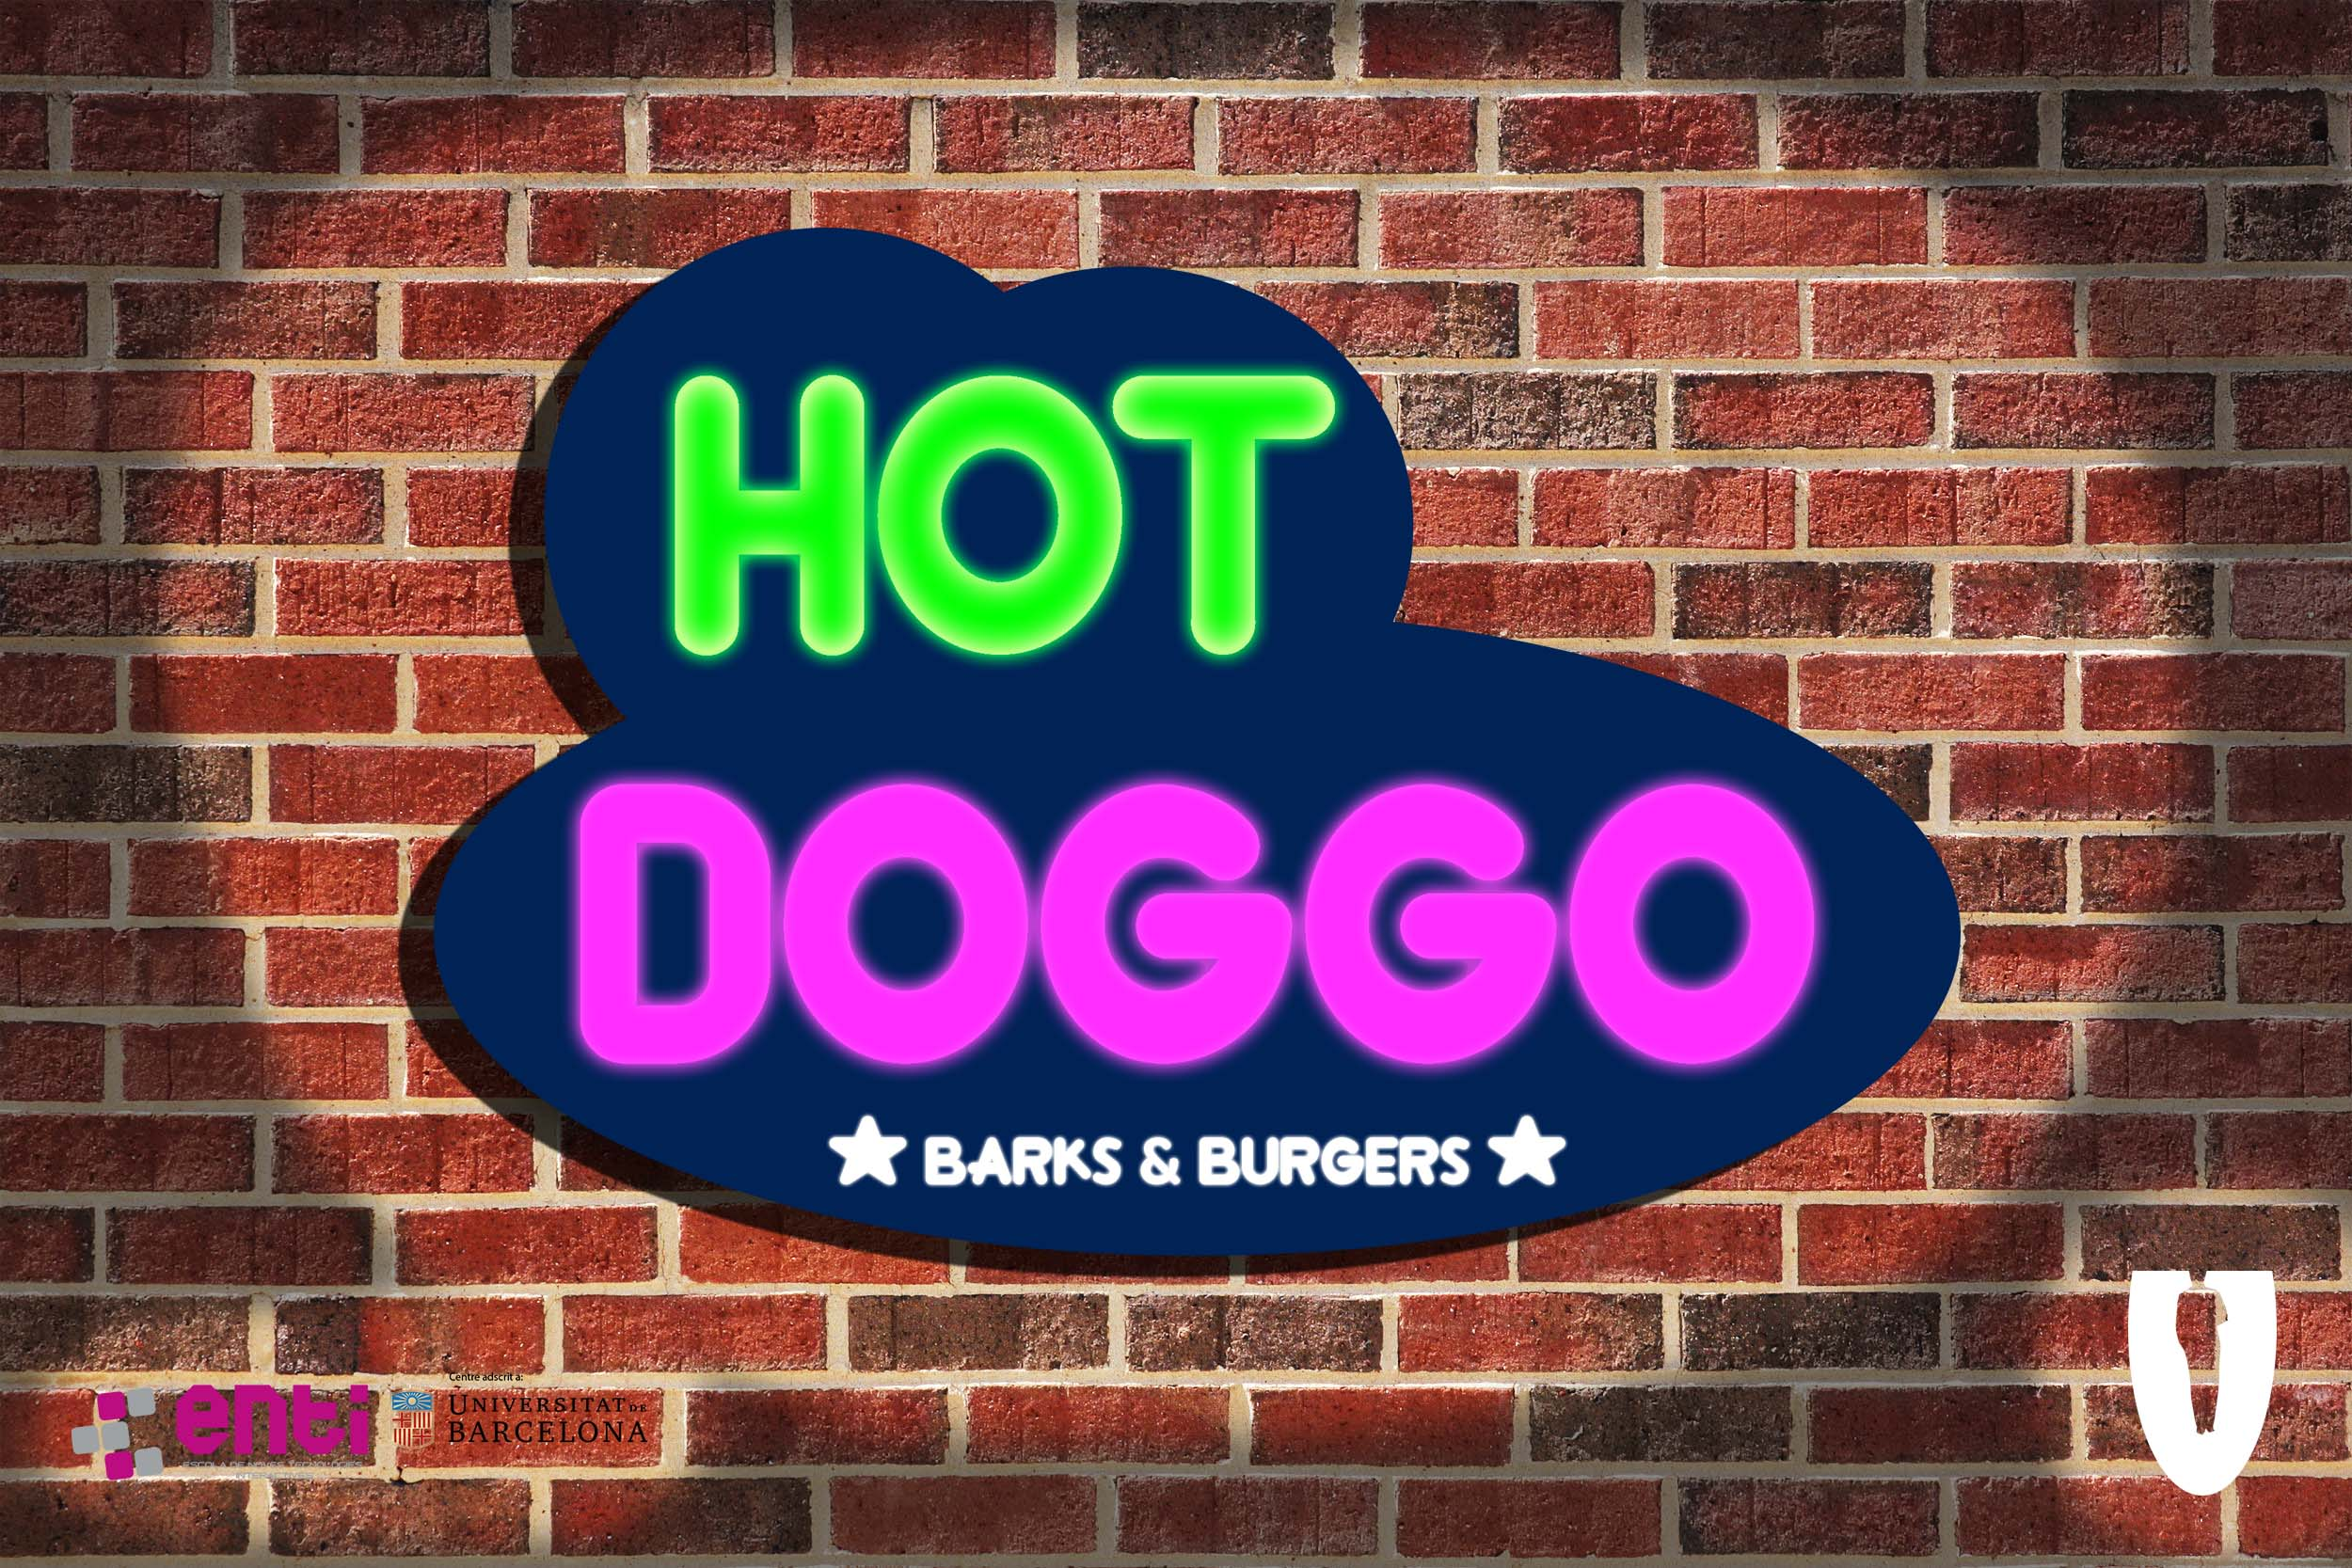 Hot Doggo: Barks & Burgers